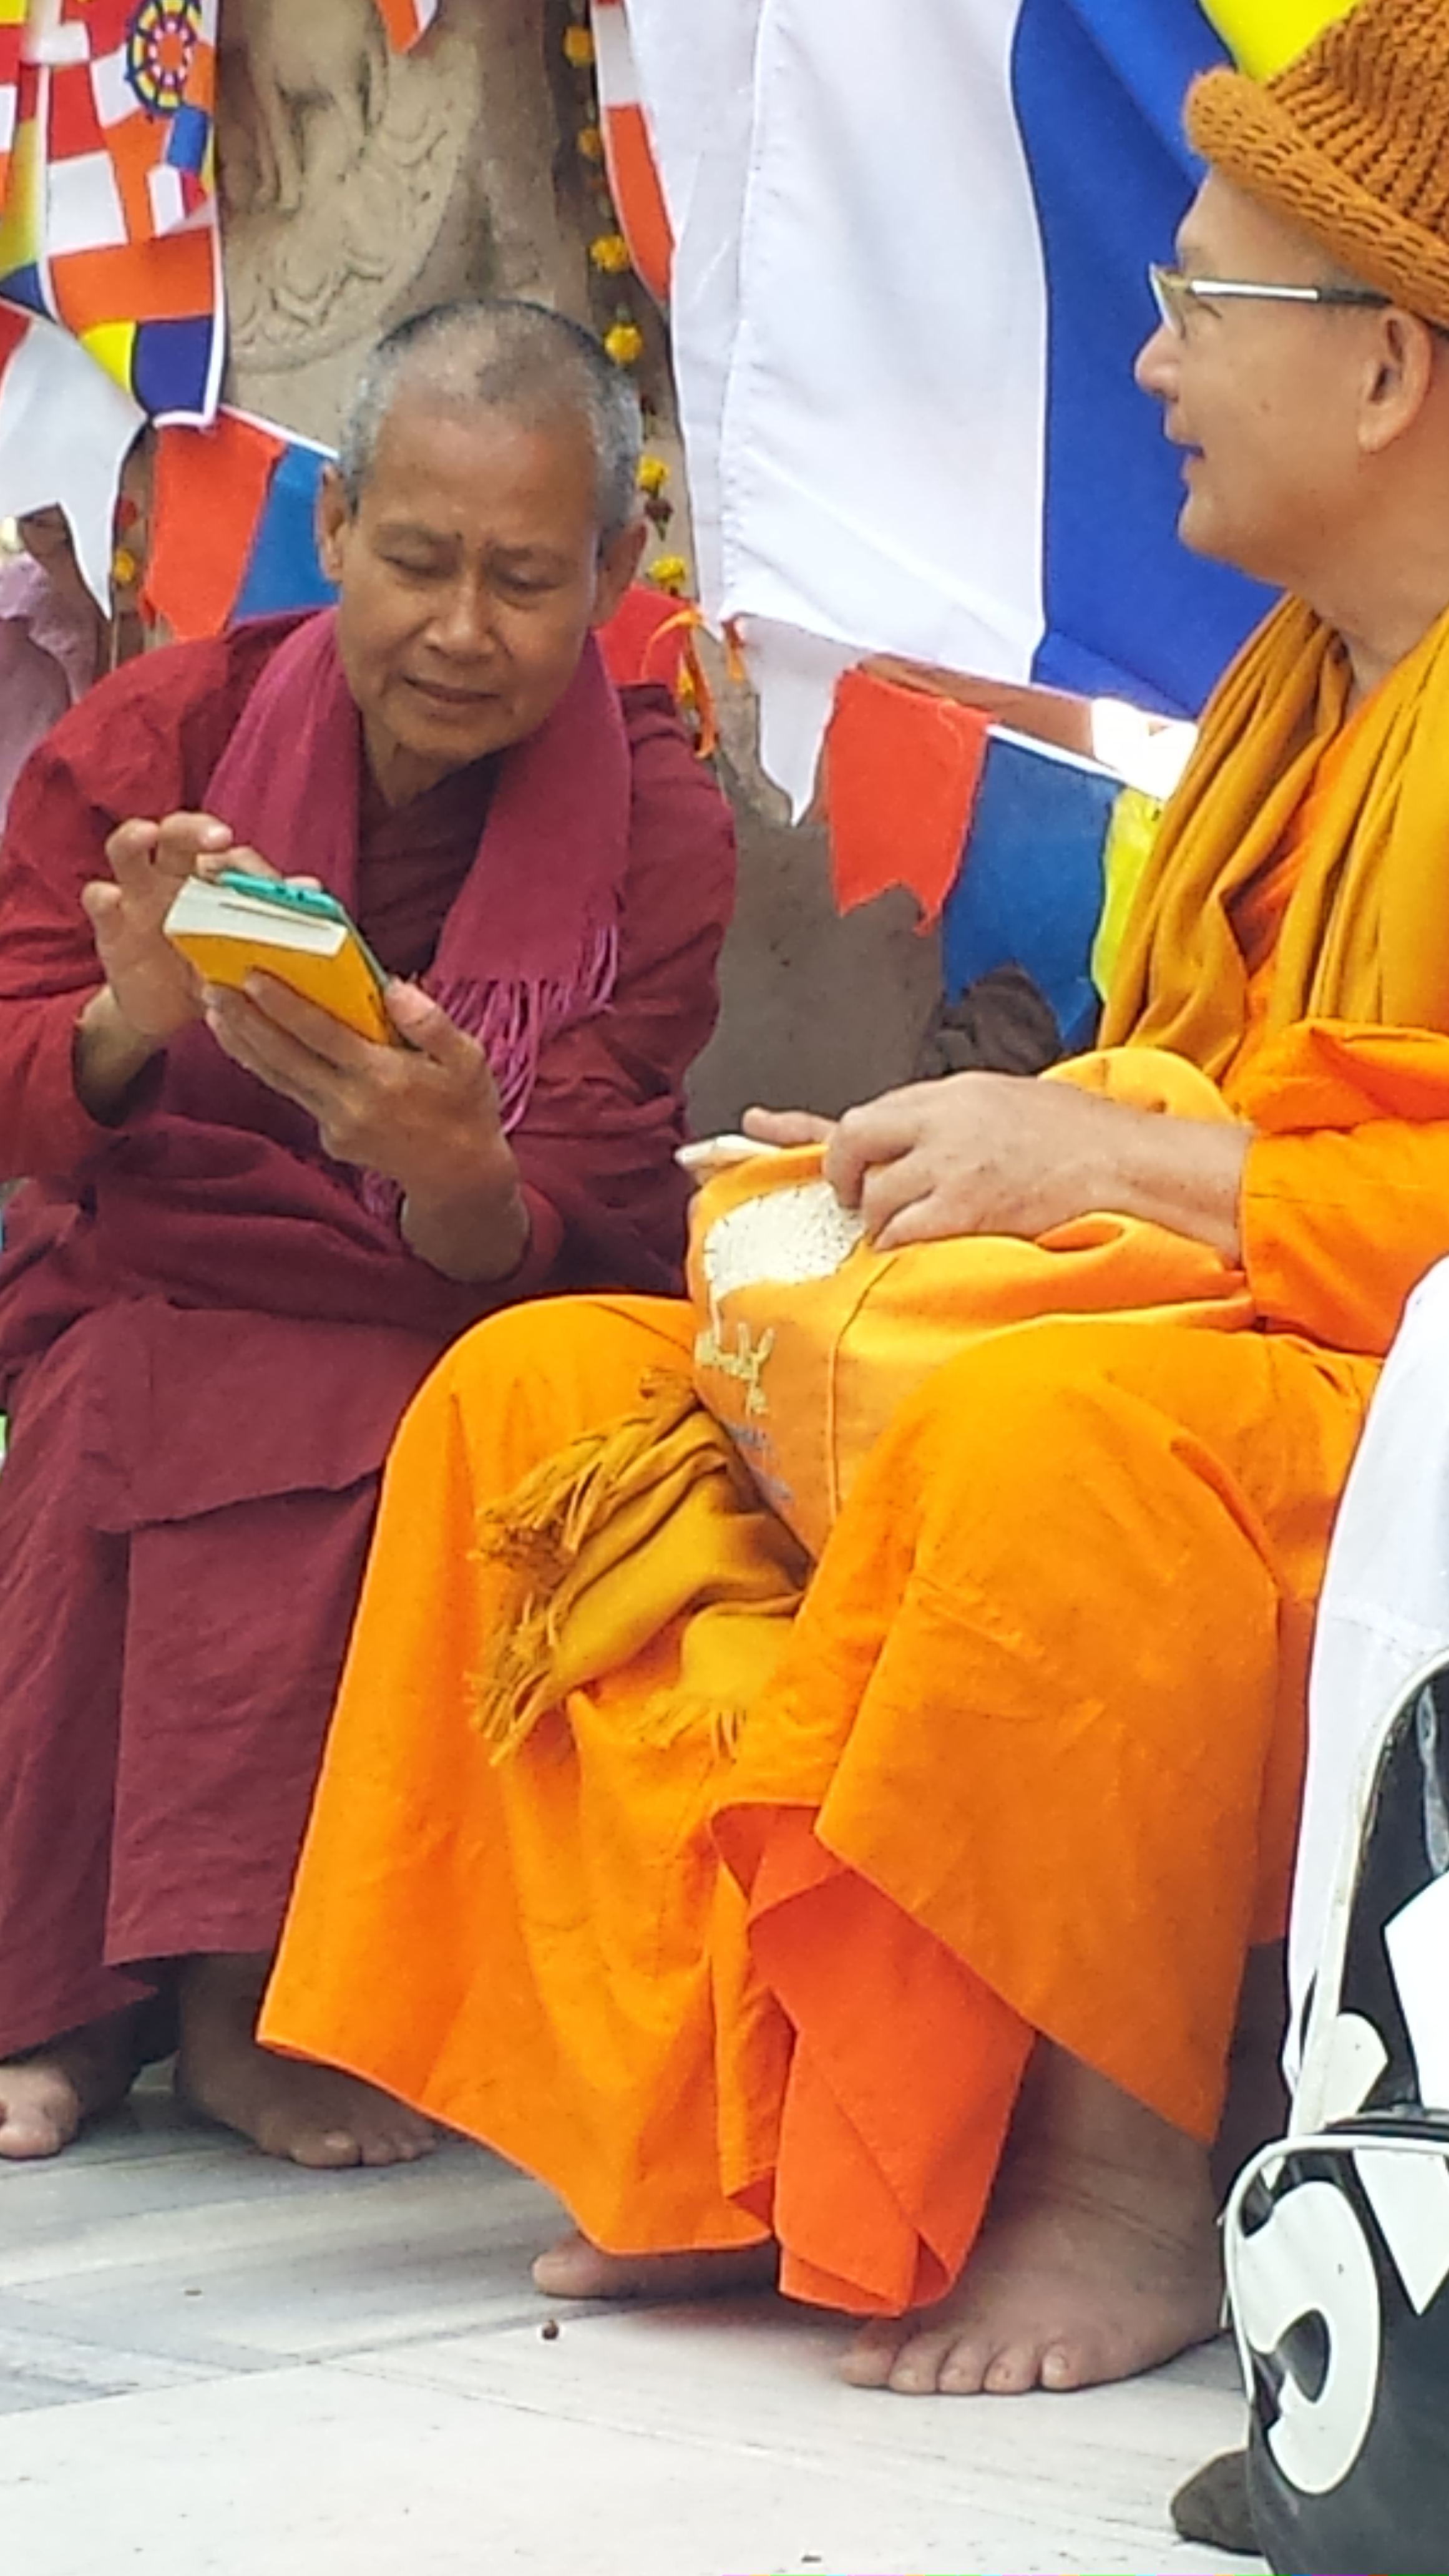 Even the monks and nuns don't take a break from their cell phones at the Maha Bodhi Temple.  FYI:  no cell phones are allowed in the Temple complex, these people are breaking rules!